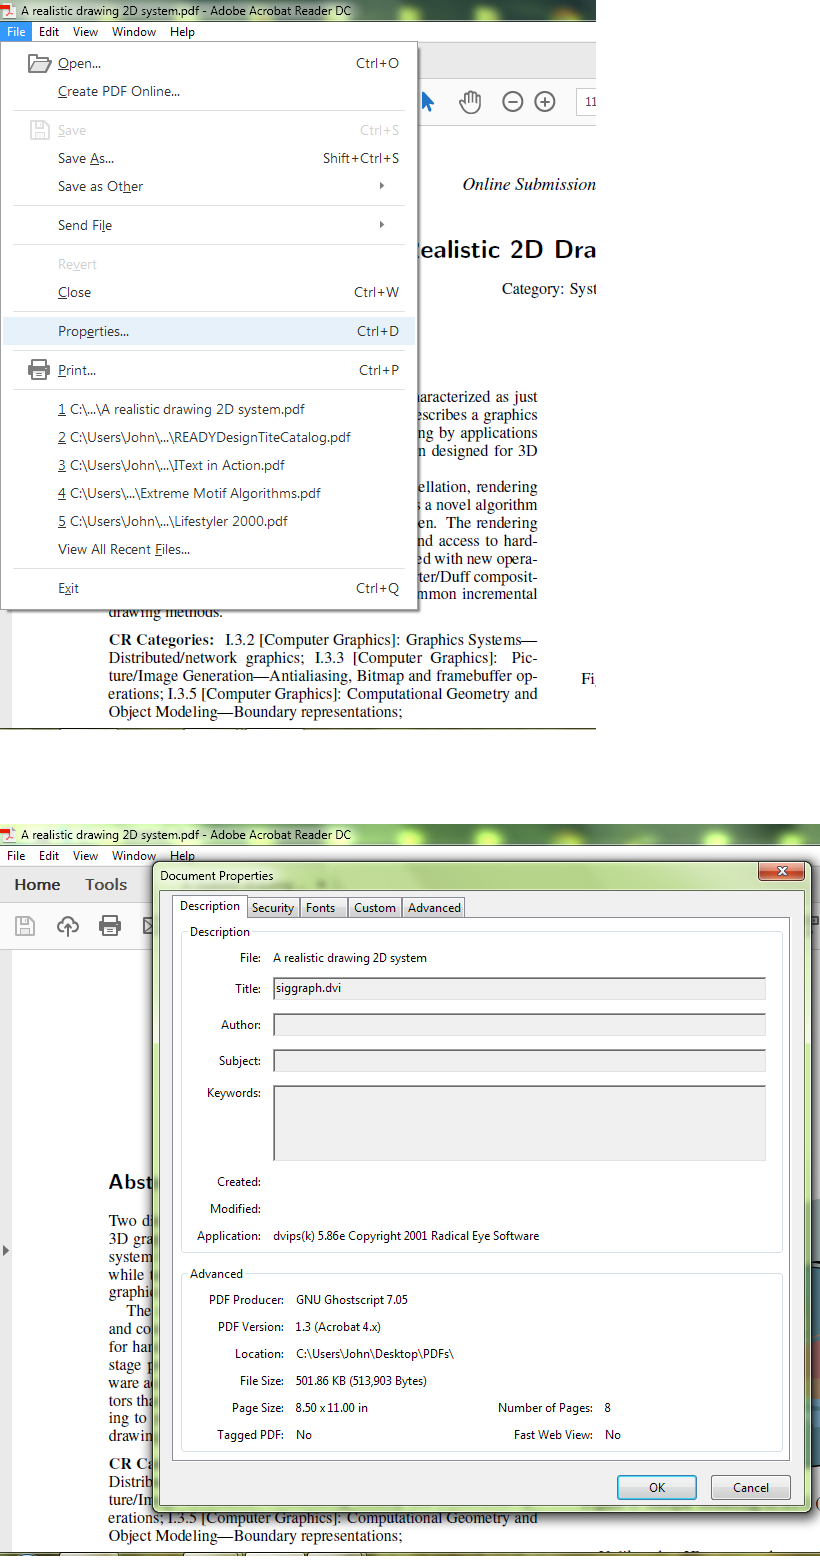 how to open a pdf document